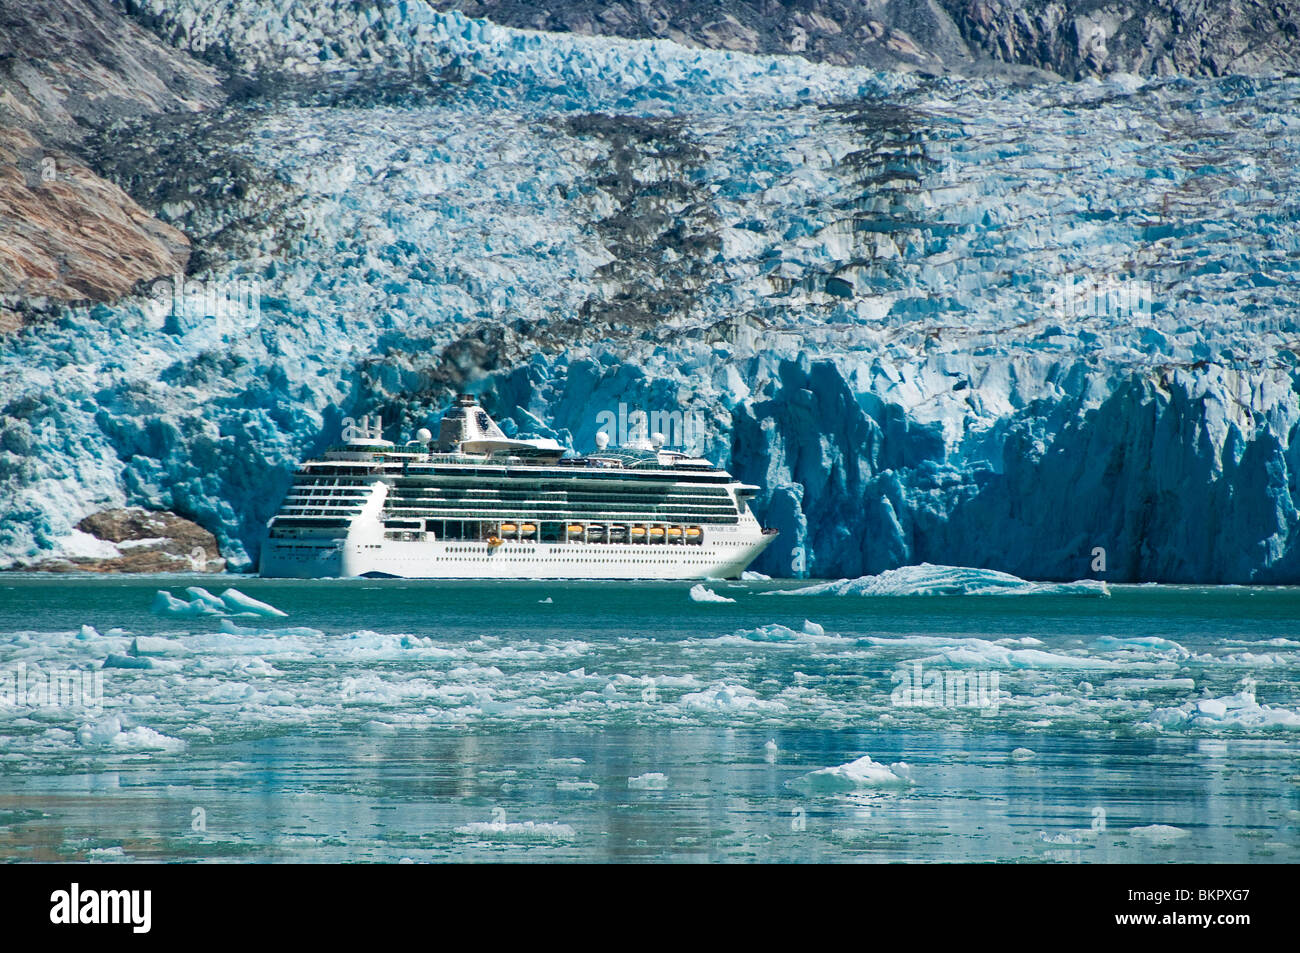 Royal Carribean cruise ship in Endicott Arm, Tracy Arm-Fords Terror National Wilderness, Southeast Alaska - Stock Image